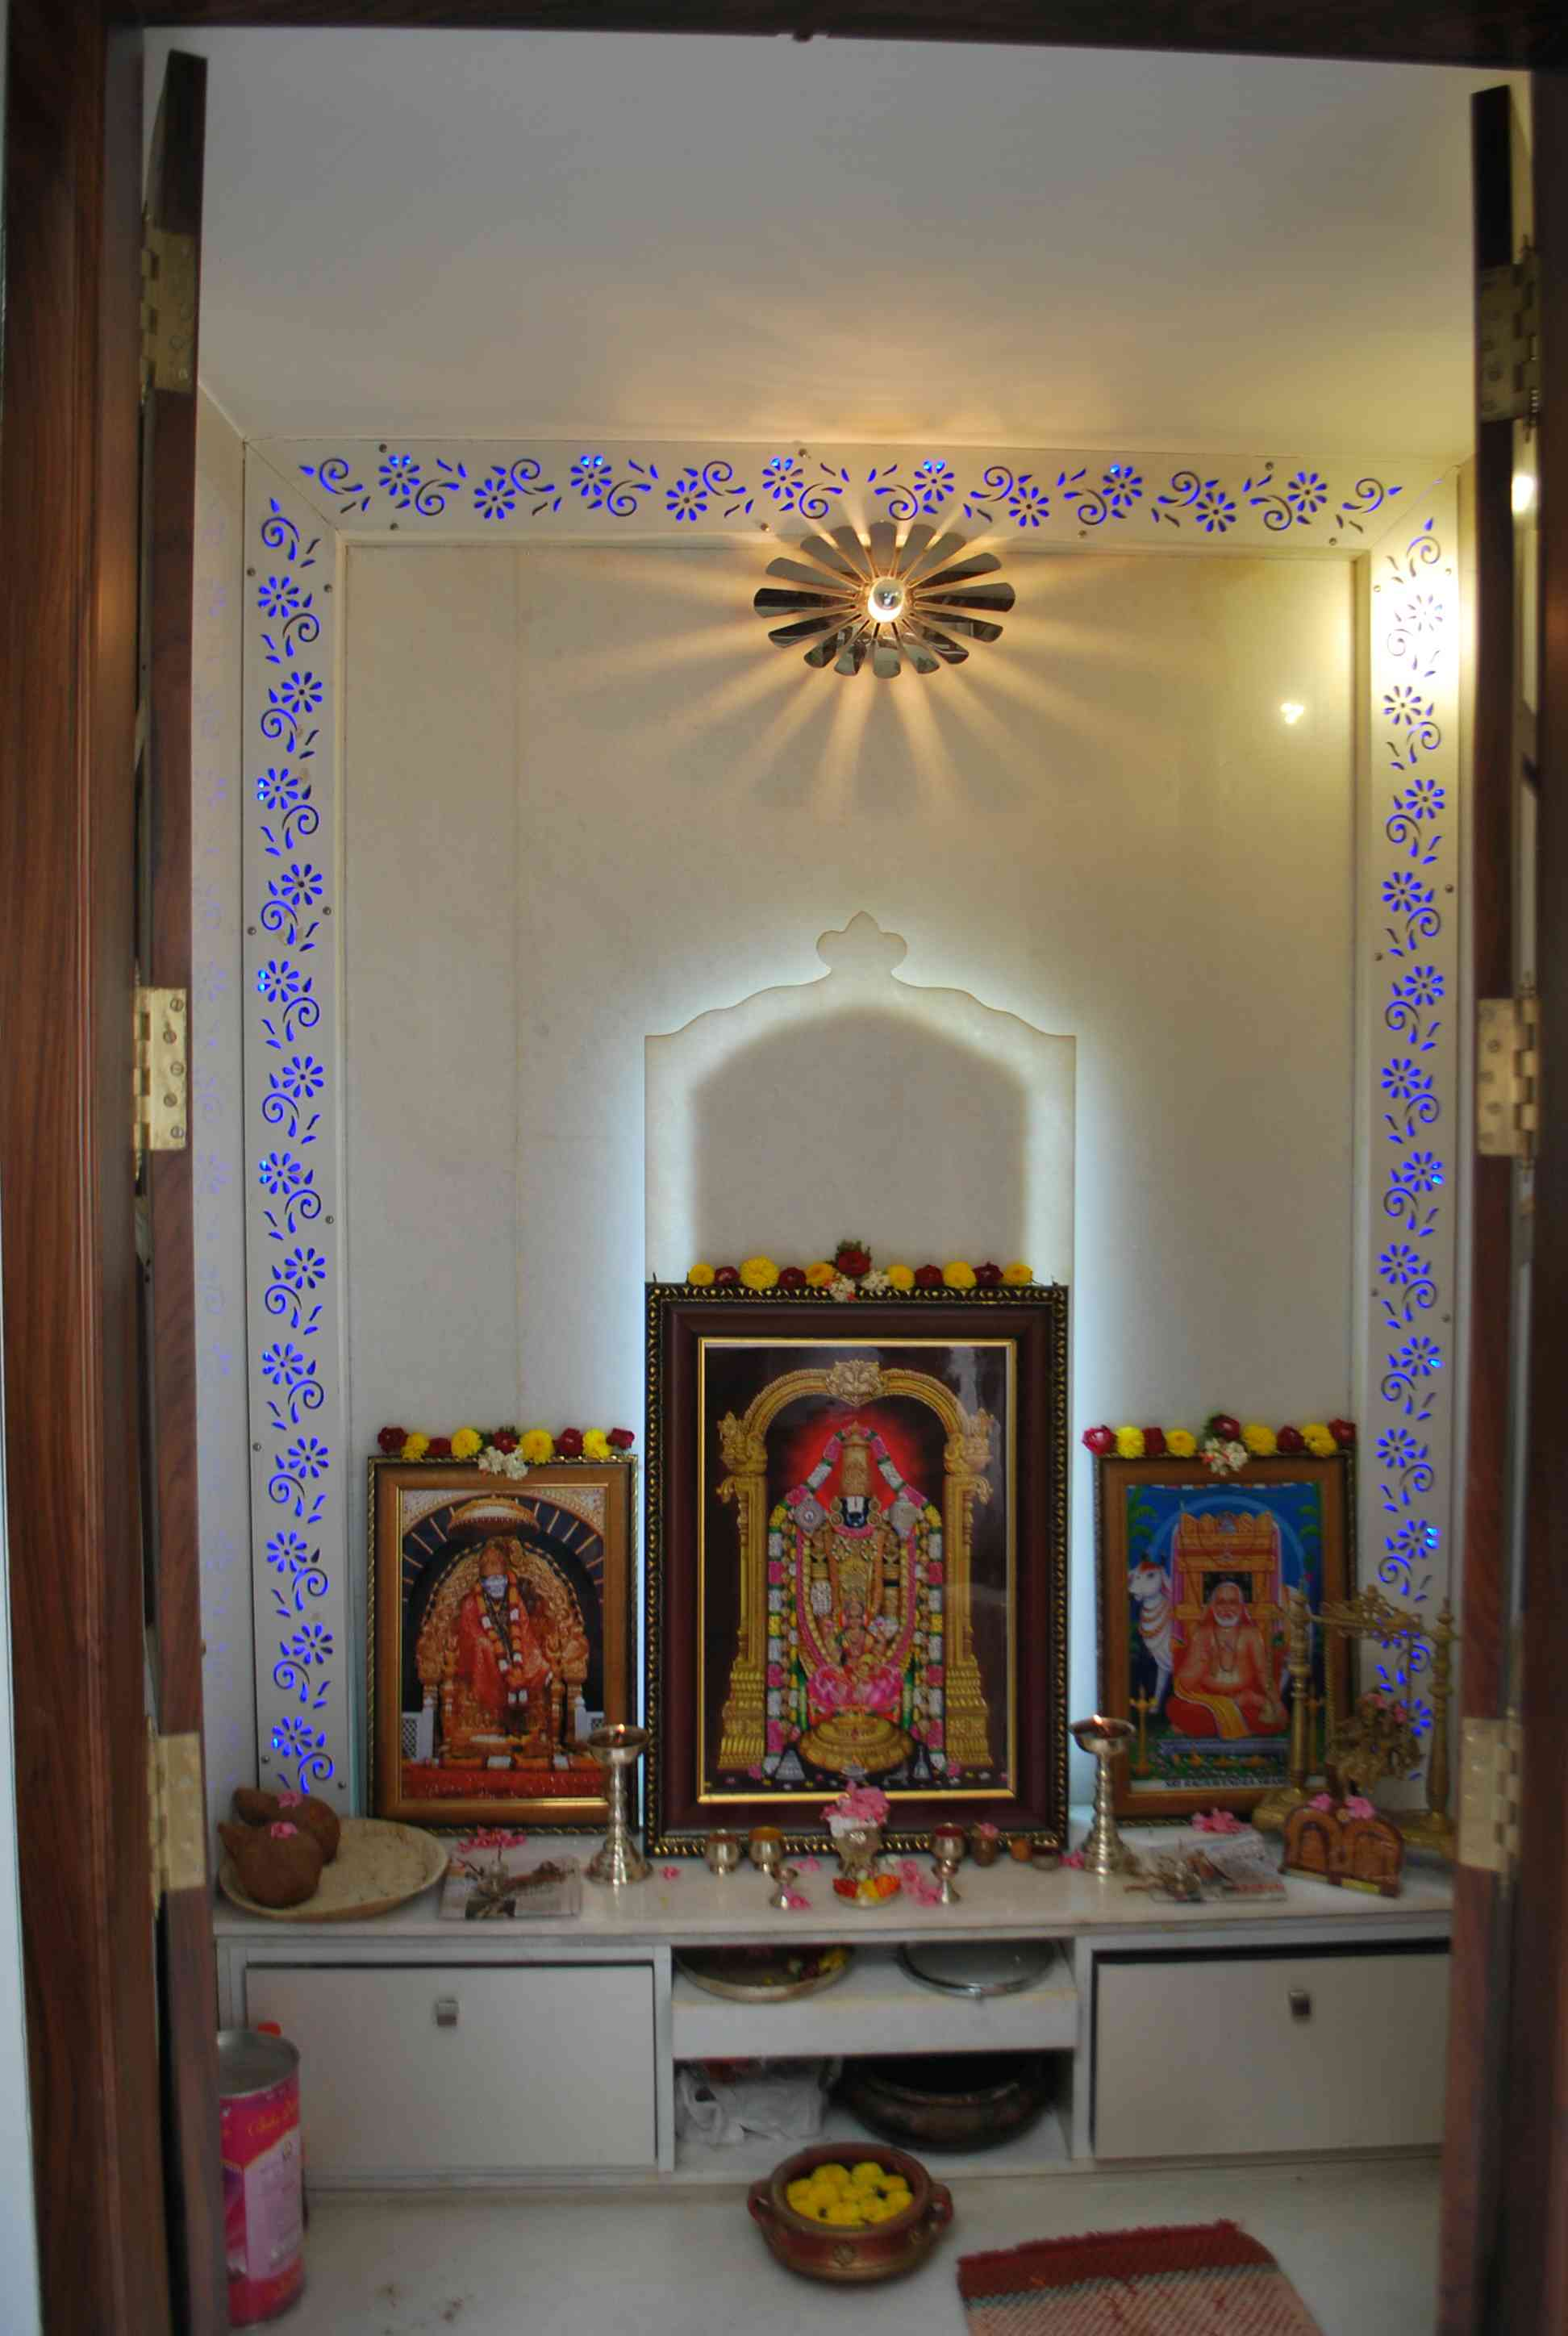 Pooja Room Door Design Photos Pictures: Pooja Room Interiors, Designs, Images, Design Ideas, Photos